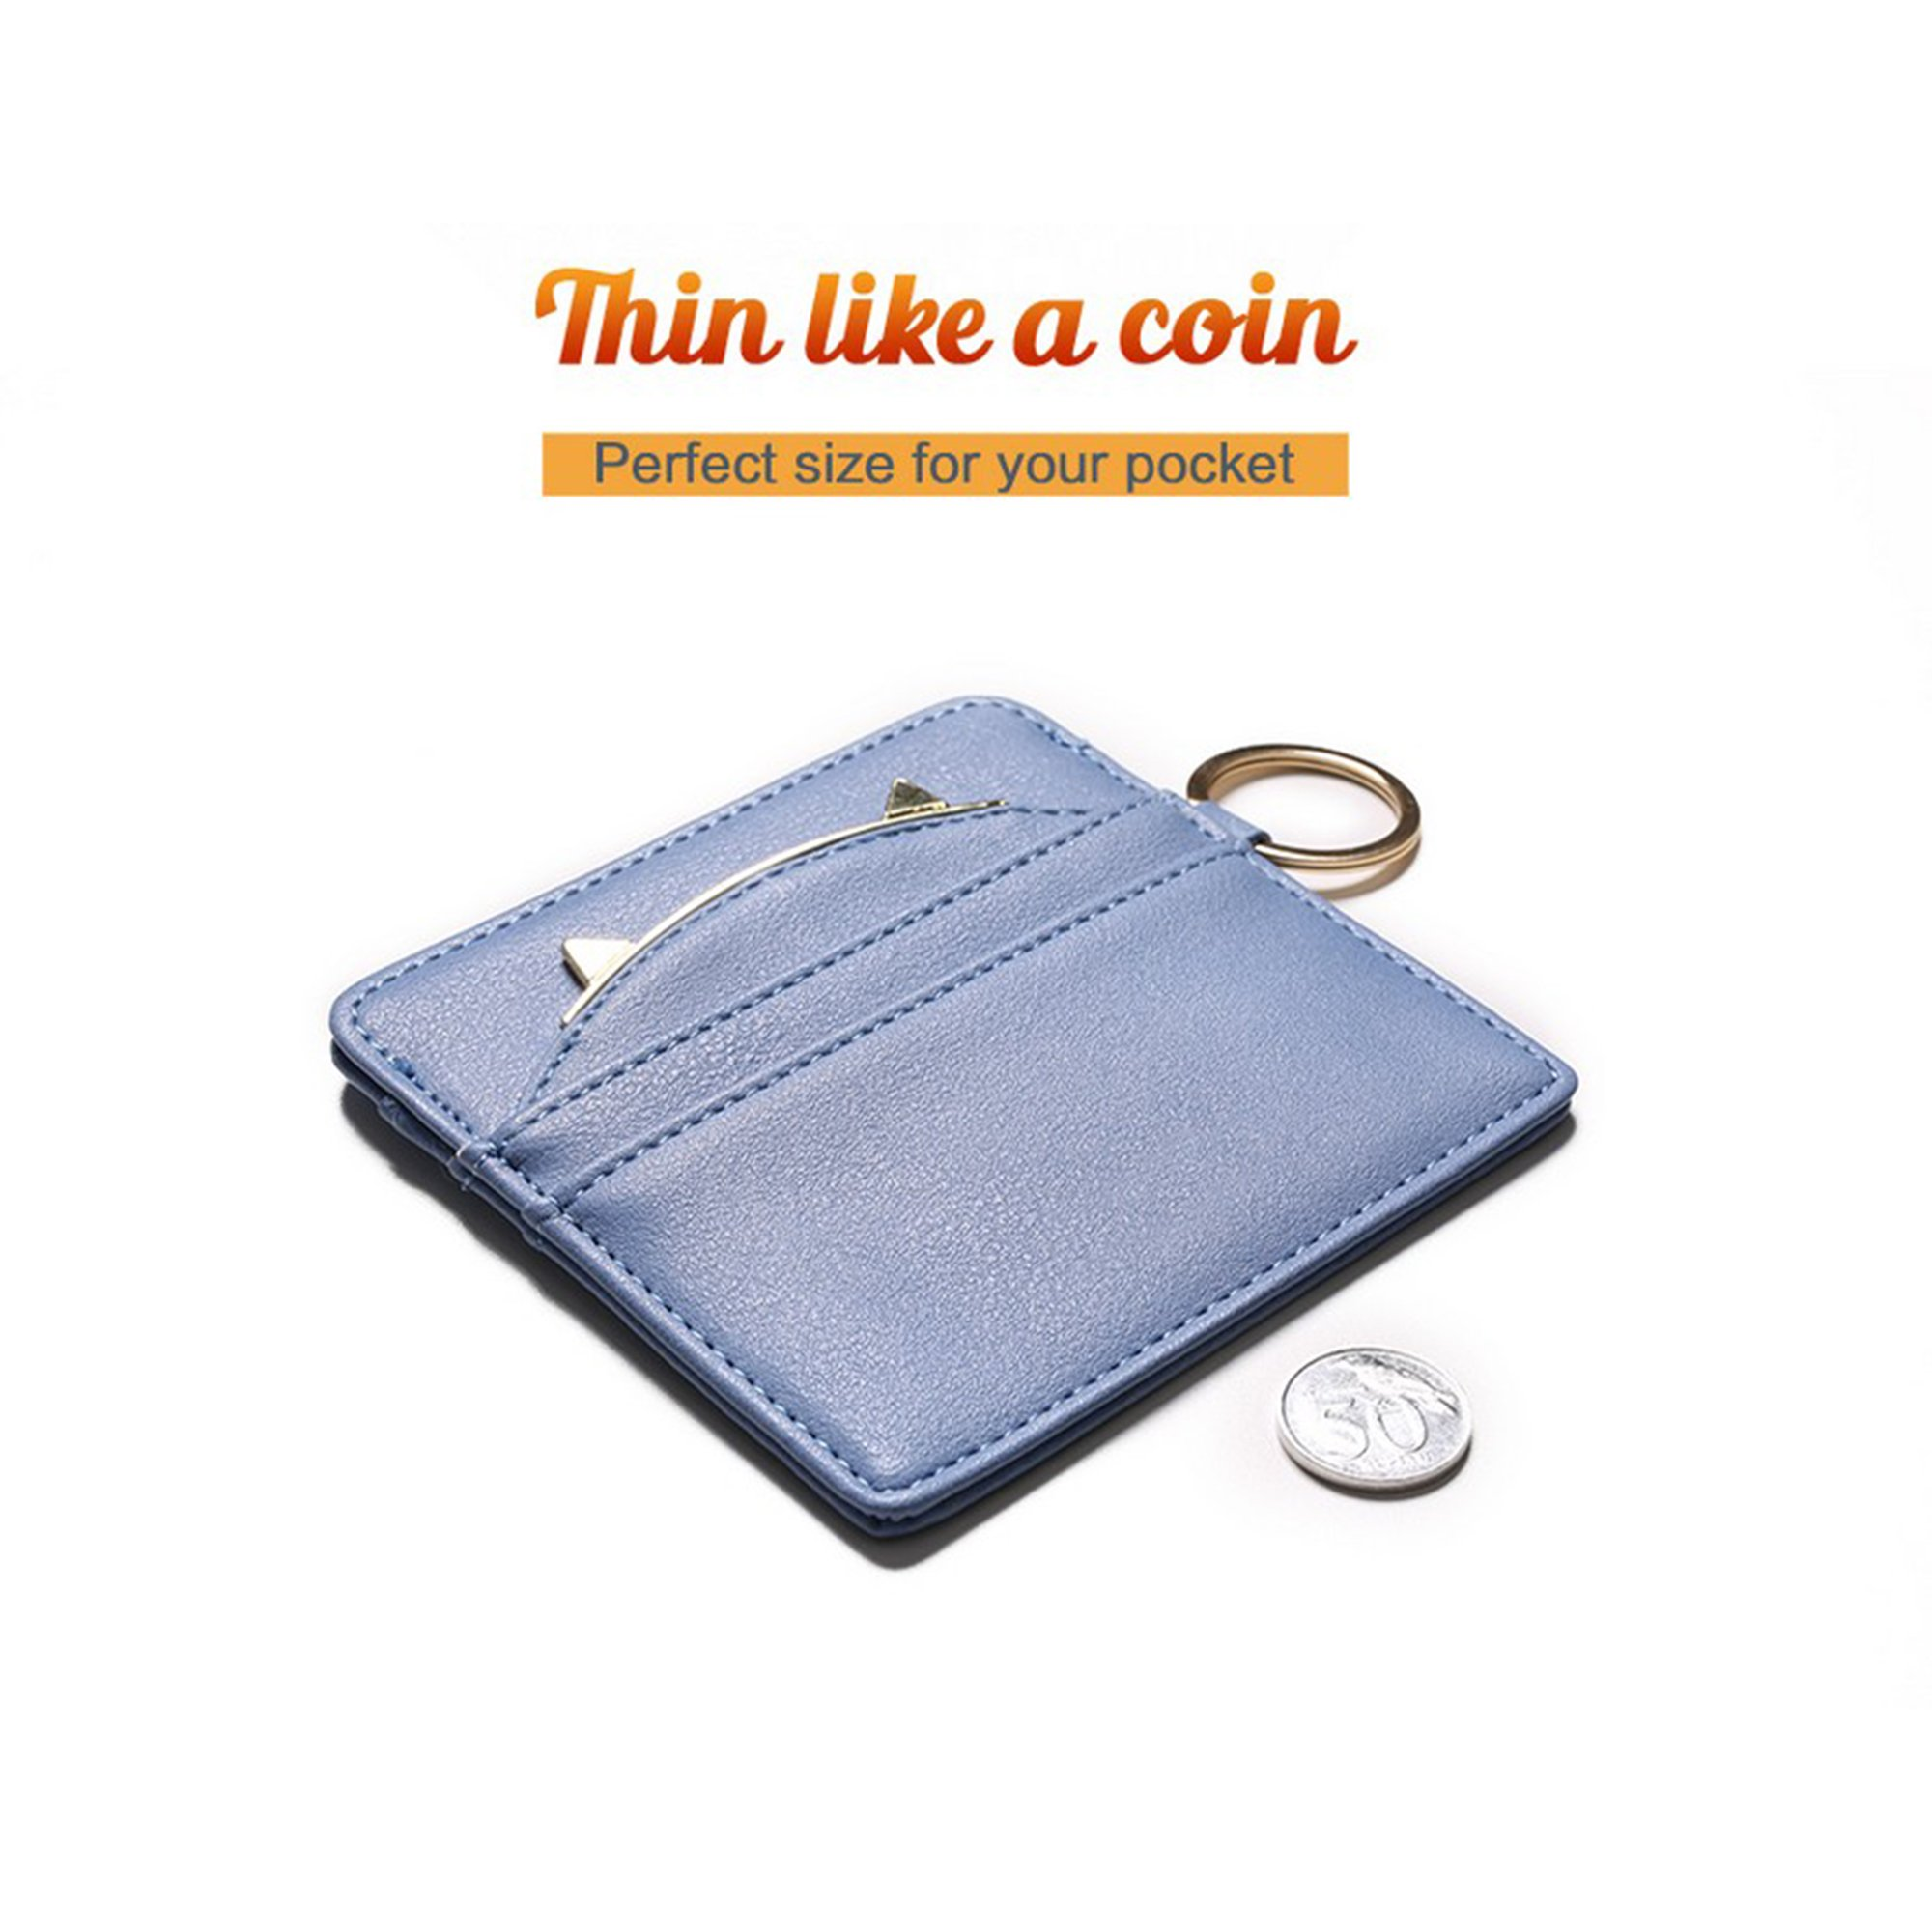 Nico Louise Cat Ear Leather Coin Purses Women Key Chain Credit Card Holders Girls Wallet (Blue) by Nico Louise (Image #4)